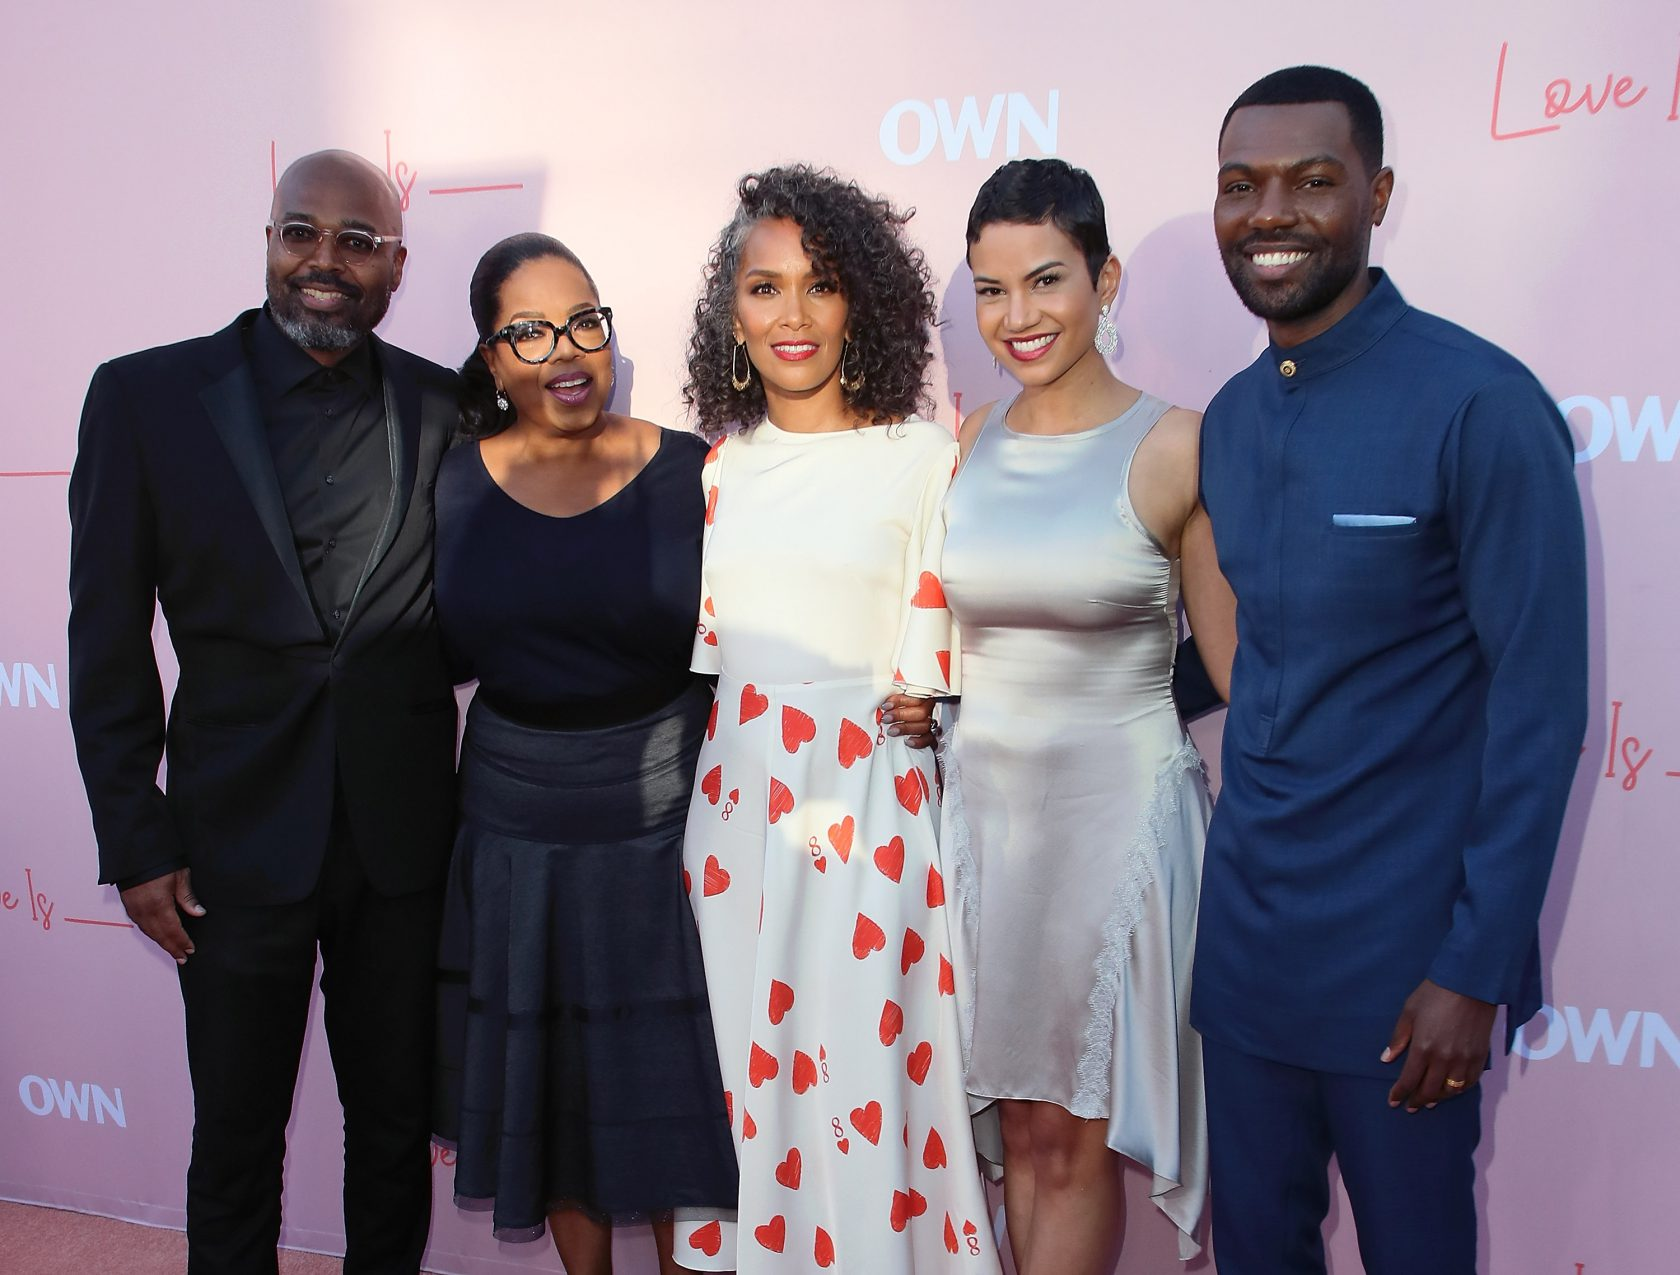 Premiere Of OWN's 'Love Is_' - Arrivals